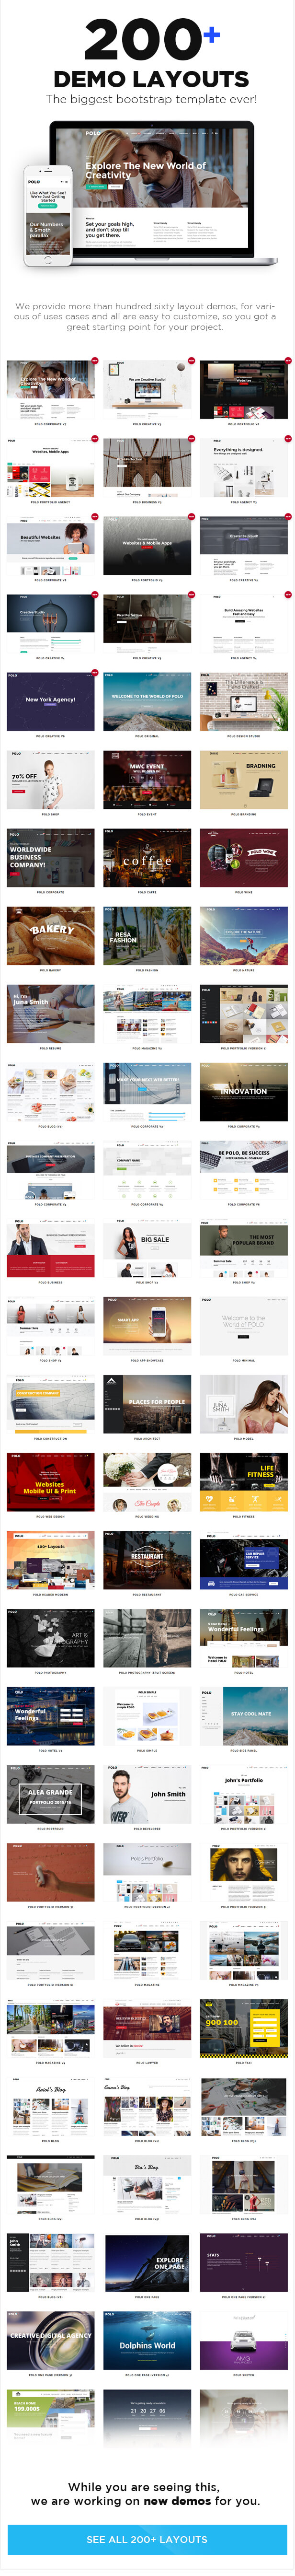 Polo - Responsive Multi-Purpose HTML5 Template - 10